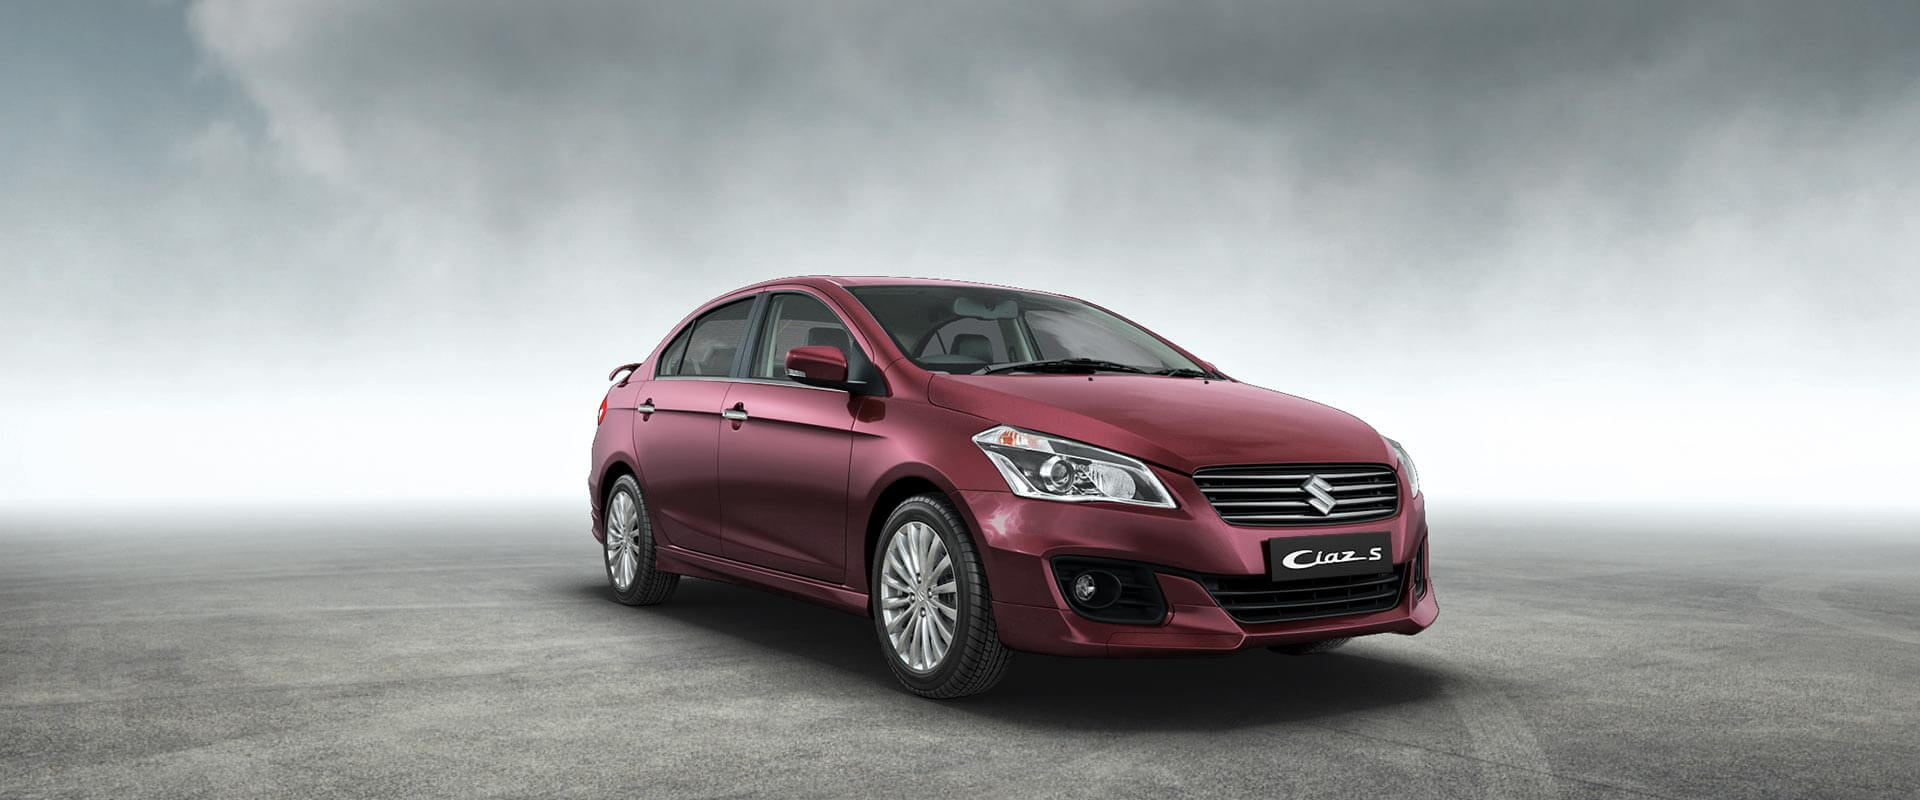 Ciaz-s Design Overview